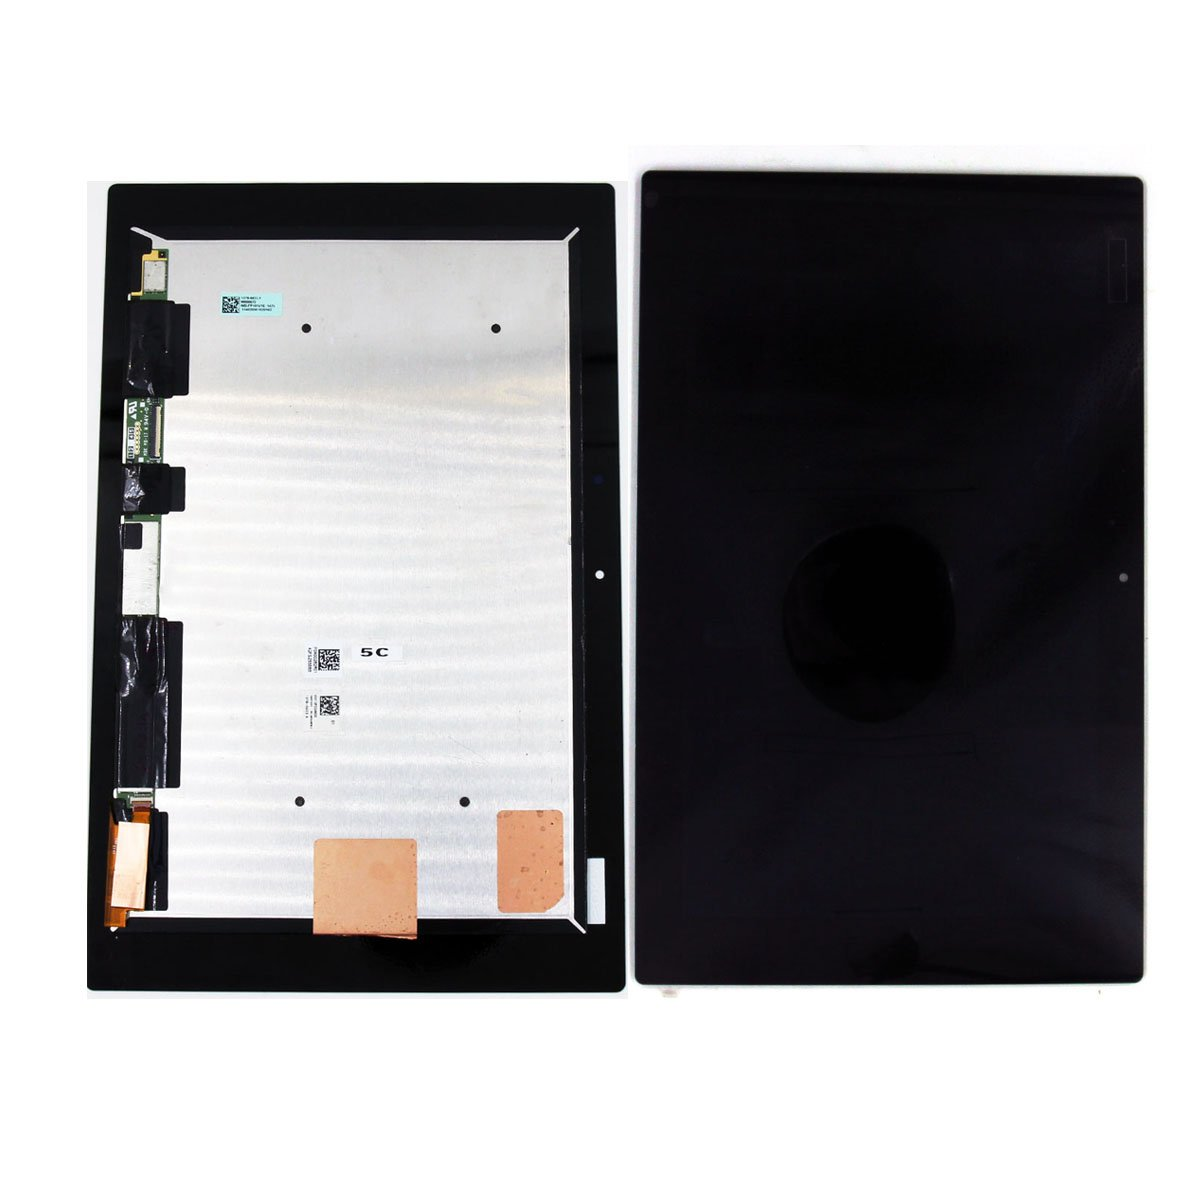 OEM SONY XPERIA TABLET Z SGP311 SGP312 10.1  REPLACEMENT DIGITIZER BOARD CONTROL